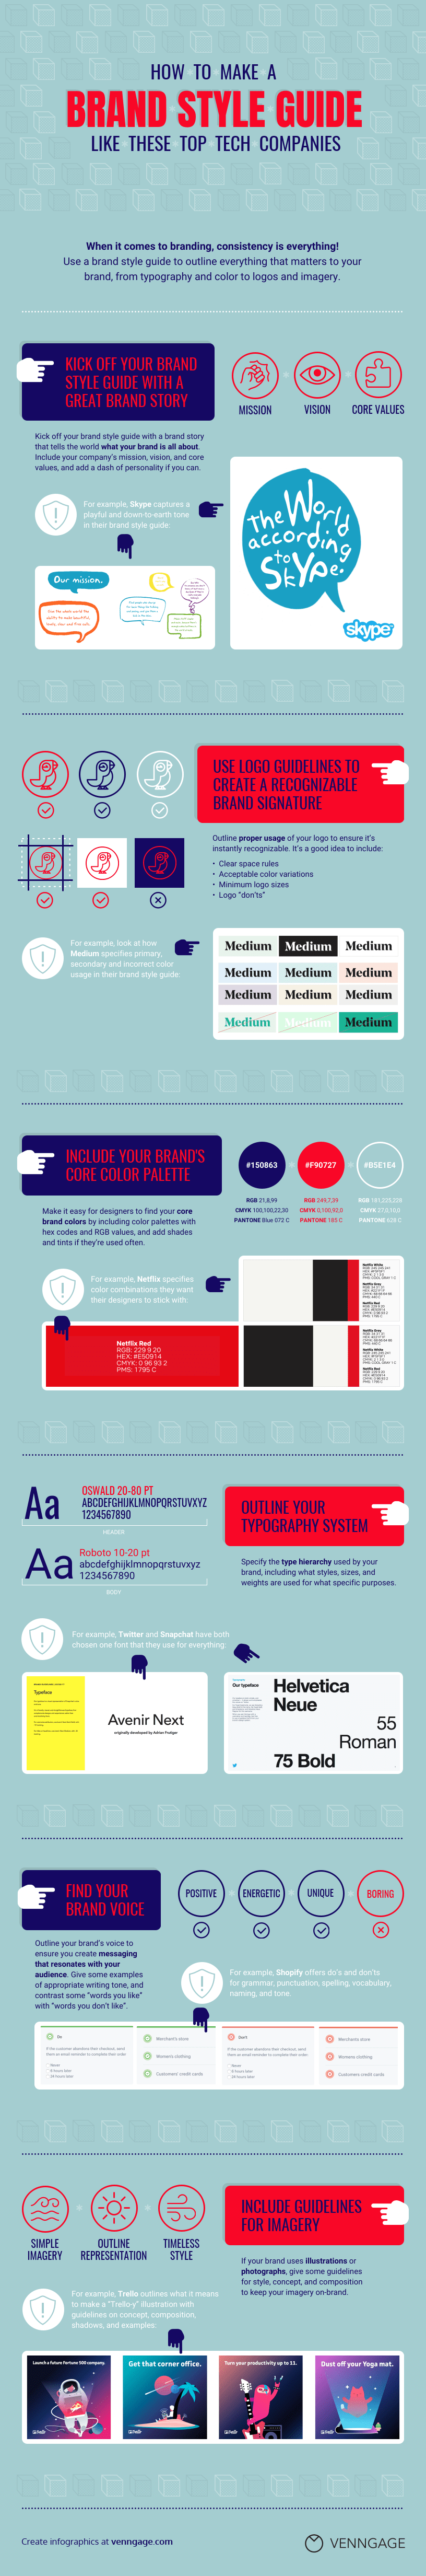 Brand Style Guide Infographic Template